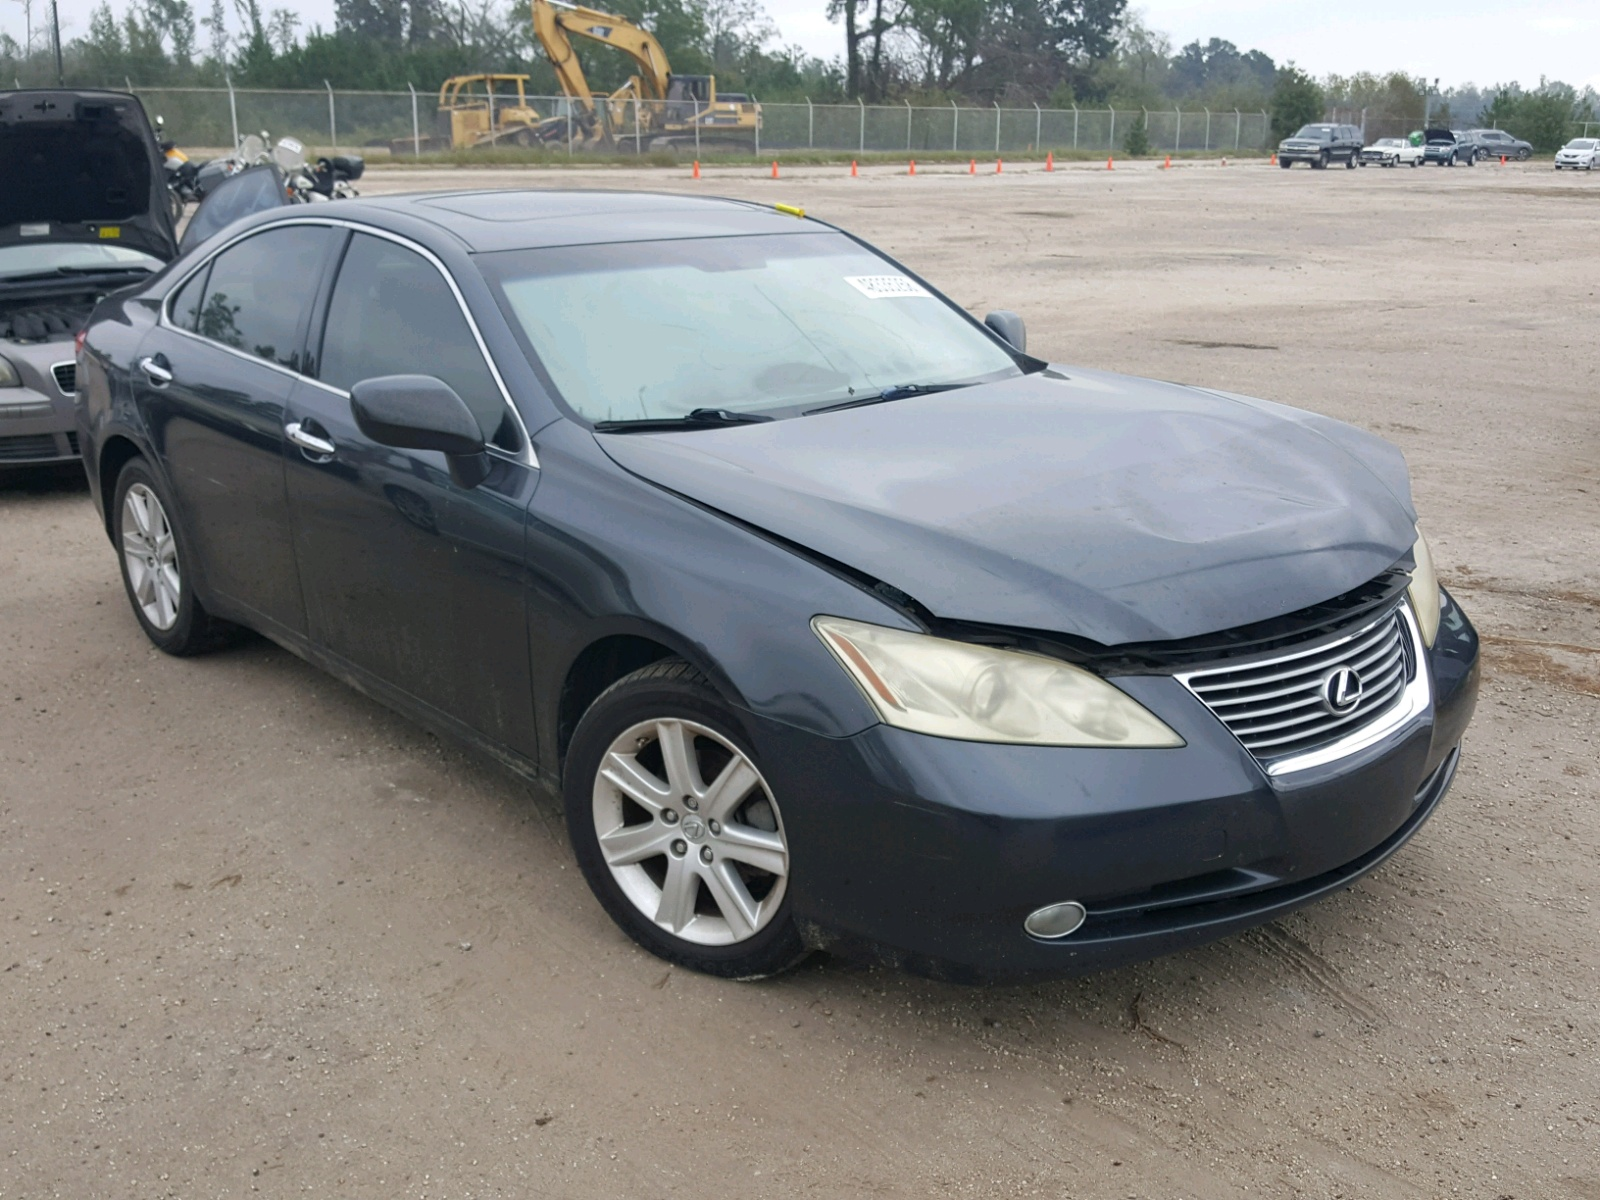 Salvage 2007 Lexus ES 350 for sale